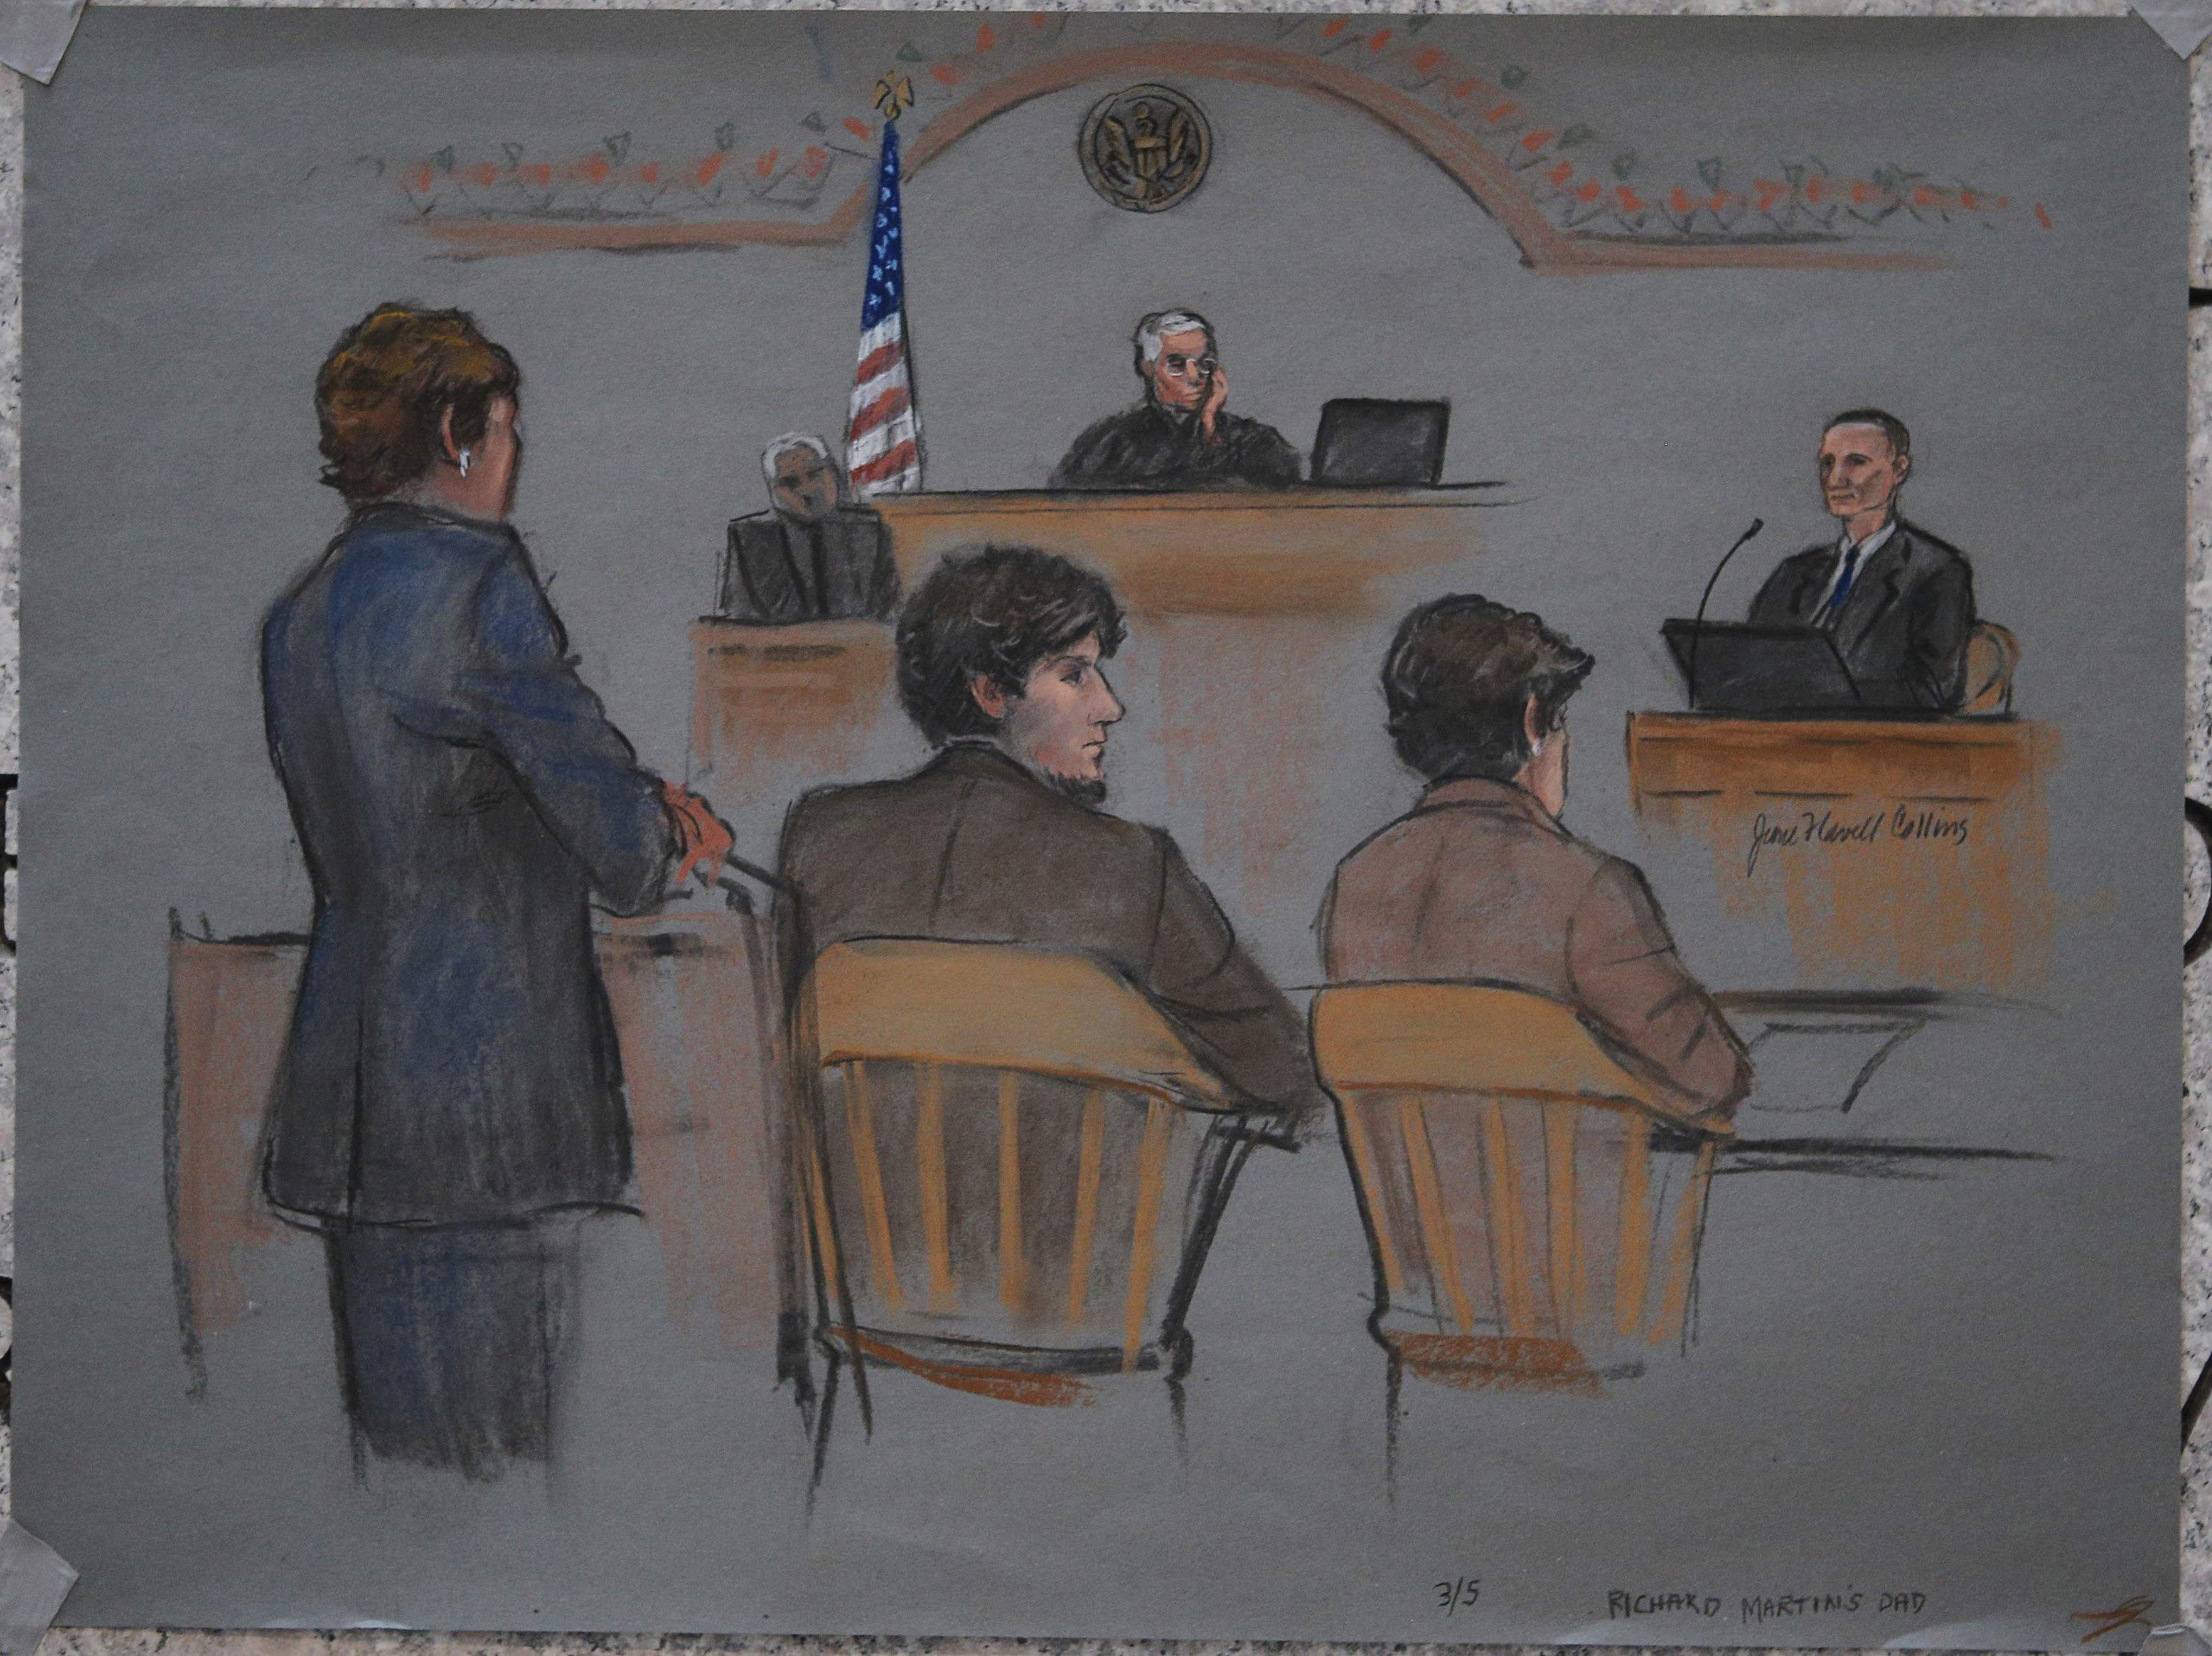 A courtroom sketch shows accused Boston Marathon bomber Dzhokhar Tsarnaev (c) and Judge George O' Toole (top) listening as bombing victim Richard Martin's father Bill (top right) testifies on the second day of Tsarnaev's trial at the federal courthouse in Boston, Massachusetts, March 5. Photo credit: Jane Flavell Collins / Reuters.